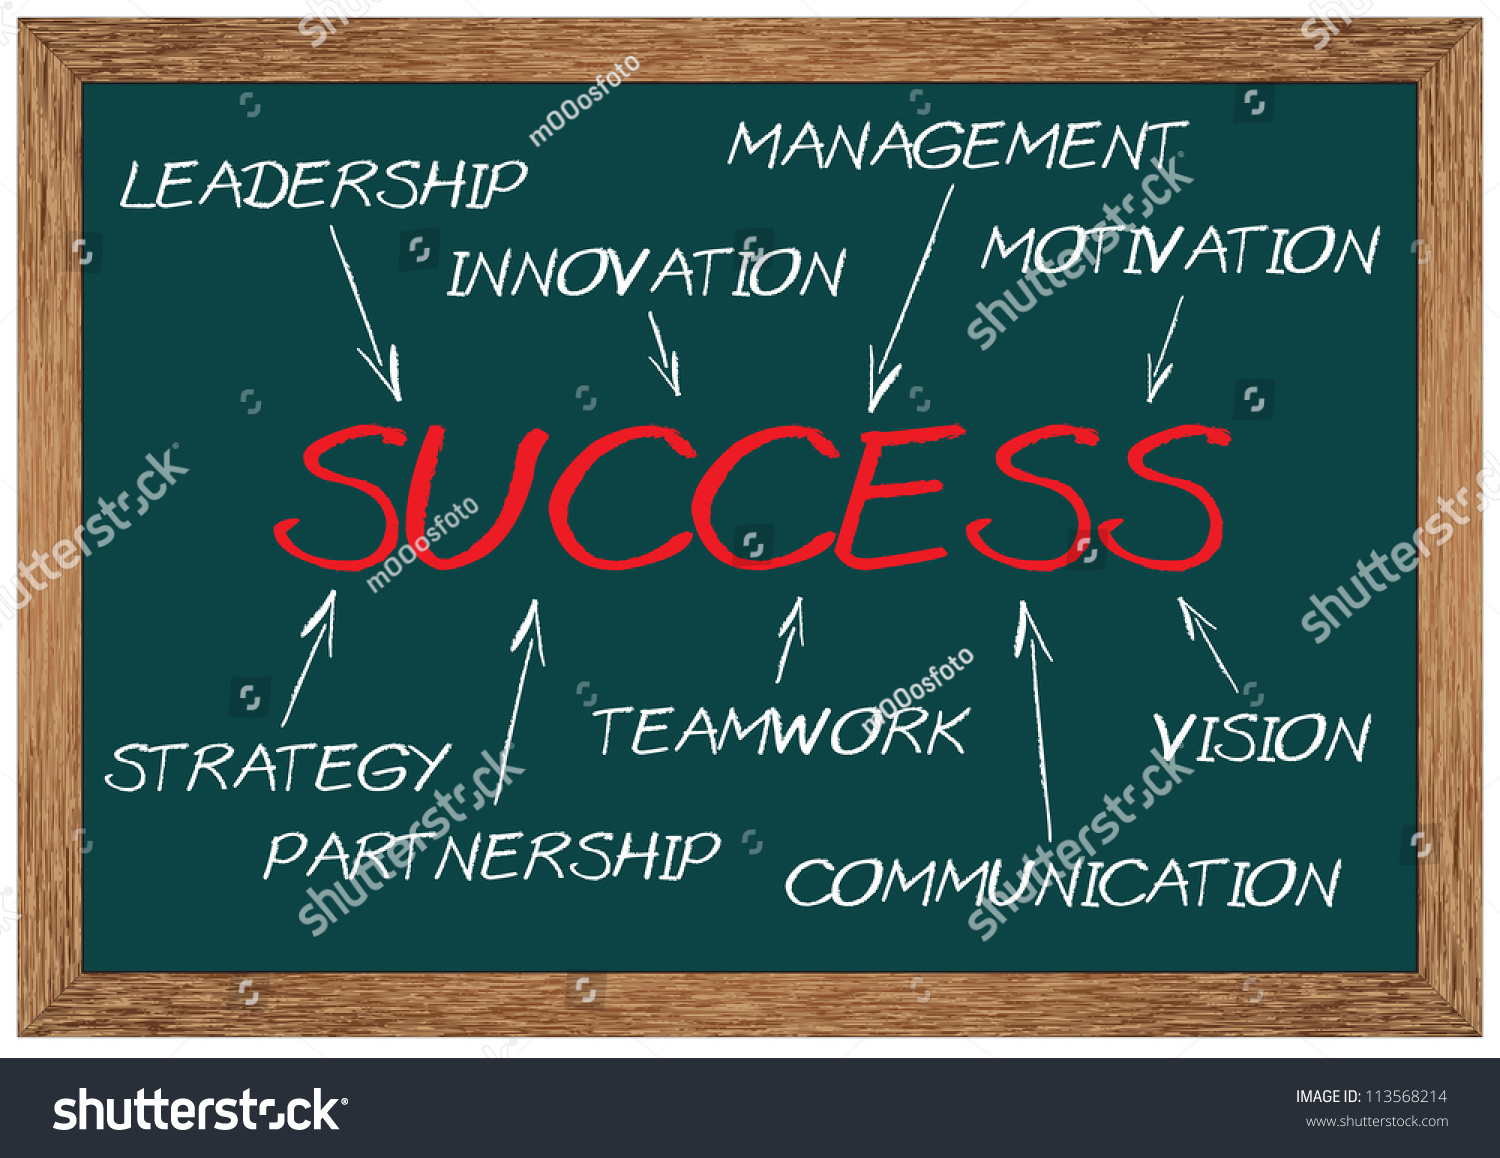 concept success consists vision strategy teamwork stock concept of success consists of vision strategy teamwork leadership motivation innovation